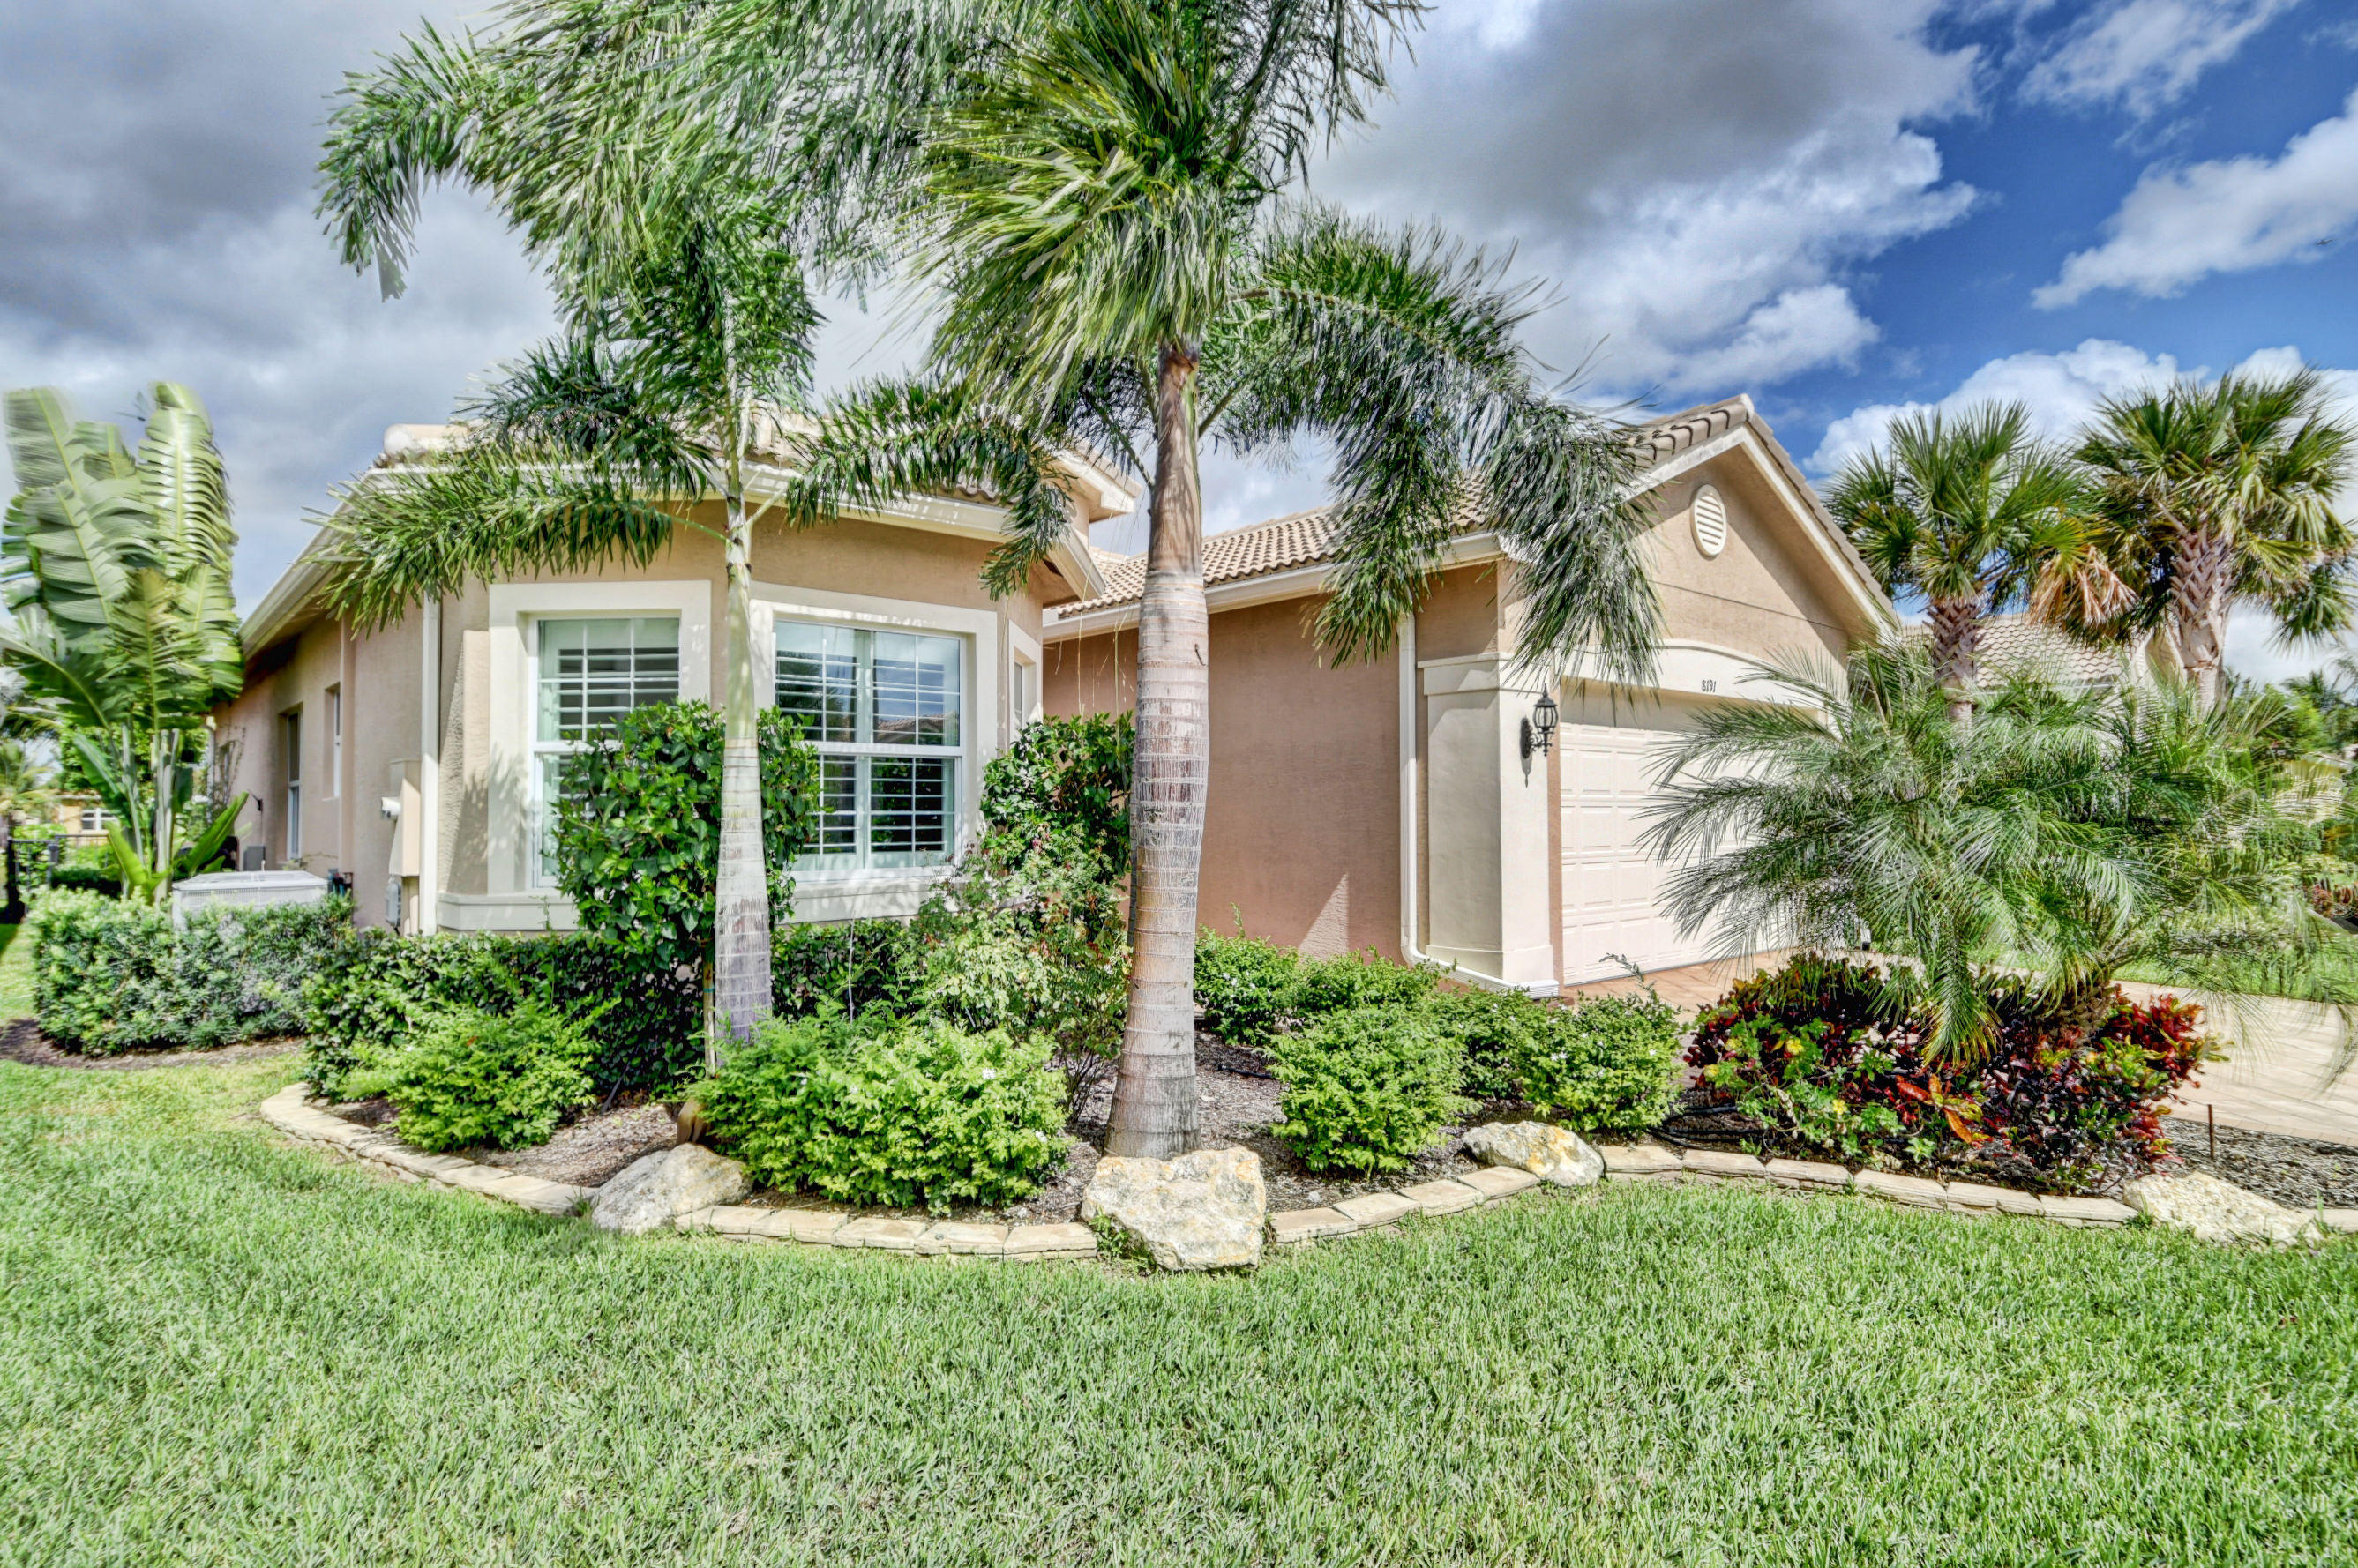 VALENCIA COVE home 8191 Pikes Peak Avenue Boynton Beach FL 33473